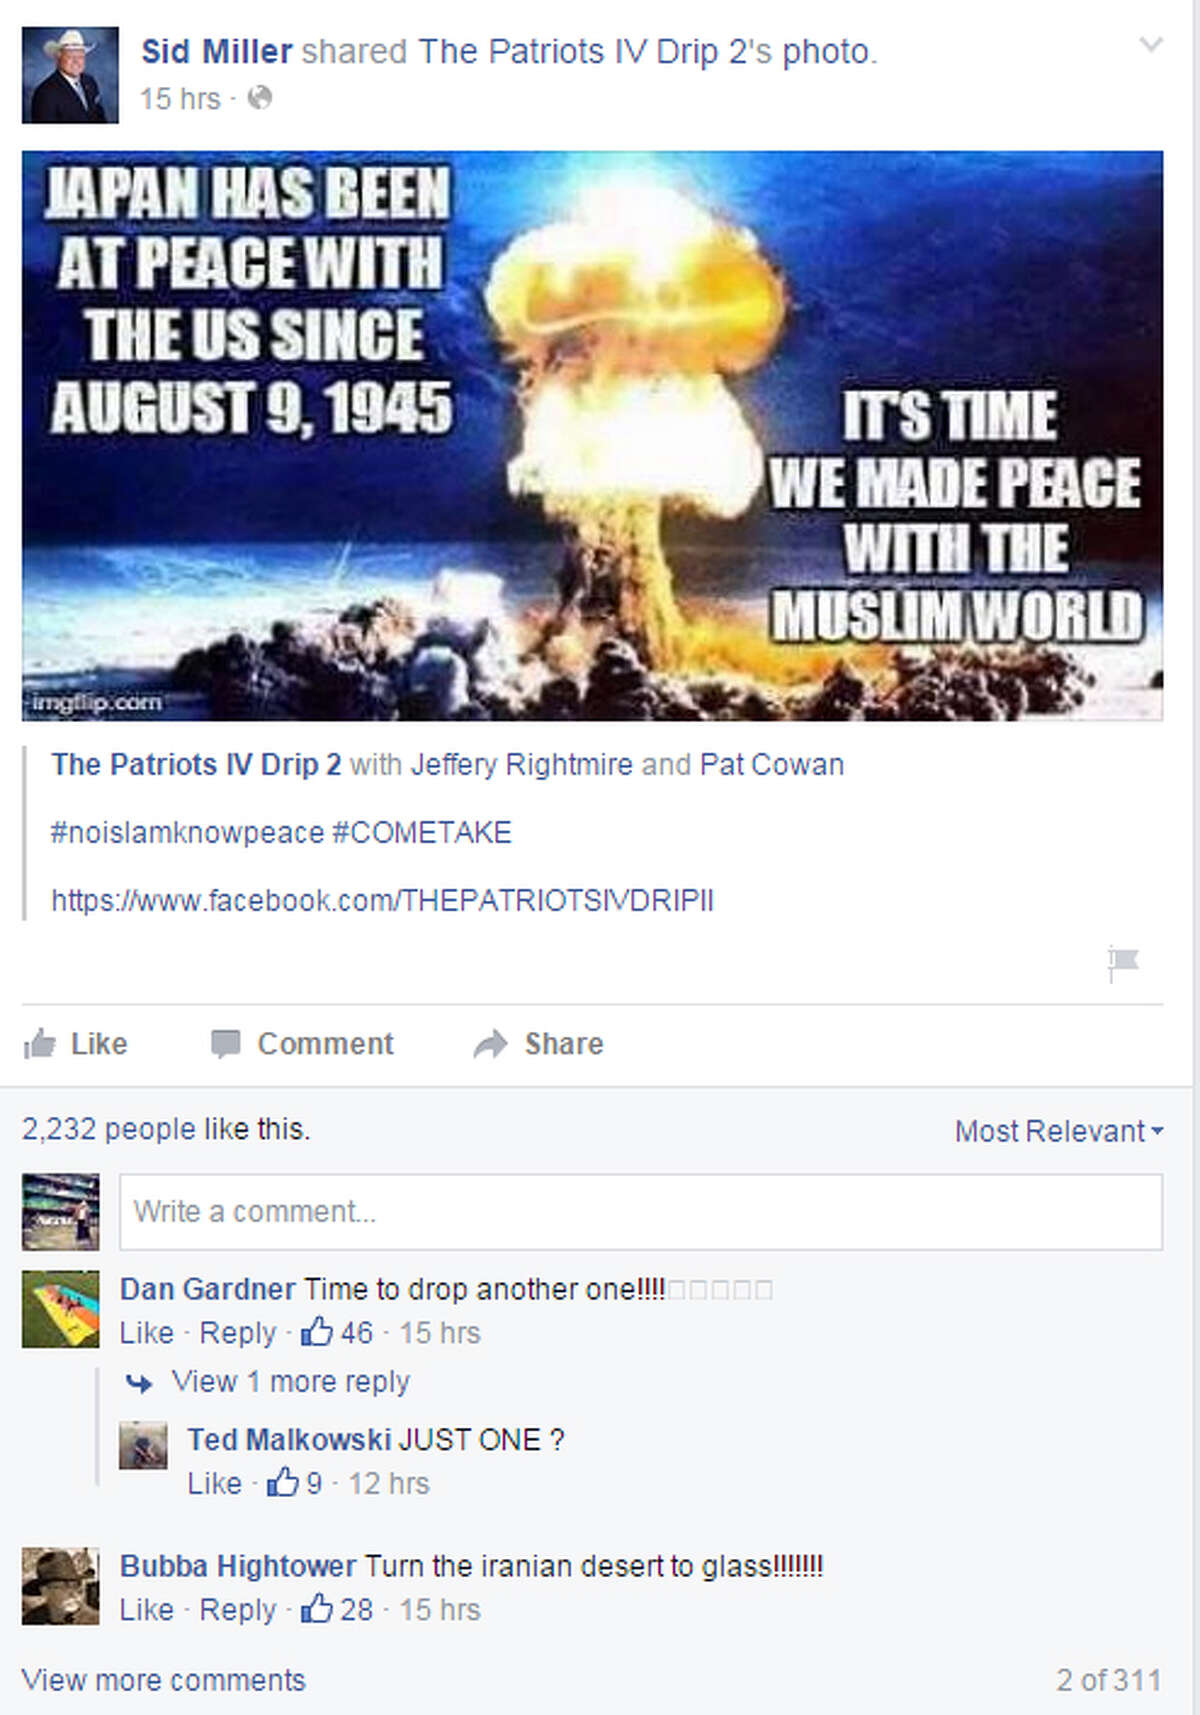 This is the Facebook post shared on the page of Agriculture Commissioner Sid Miller. It calls for dropping an atomic bomb on Islamic lands. Miller has been outspoken in the past about Islam.